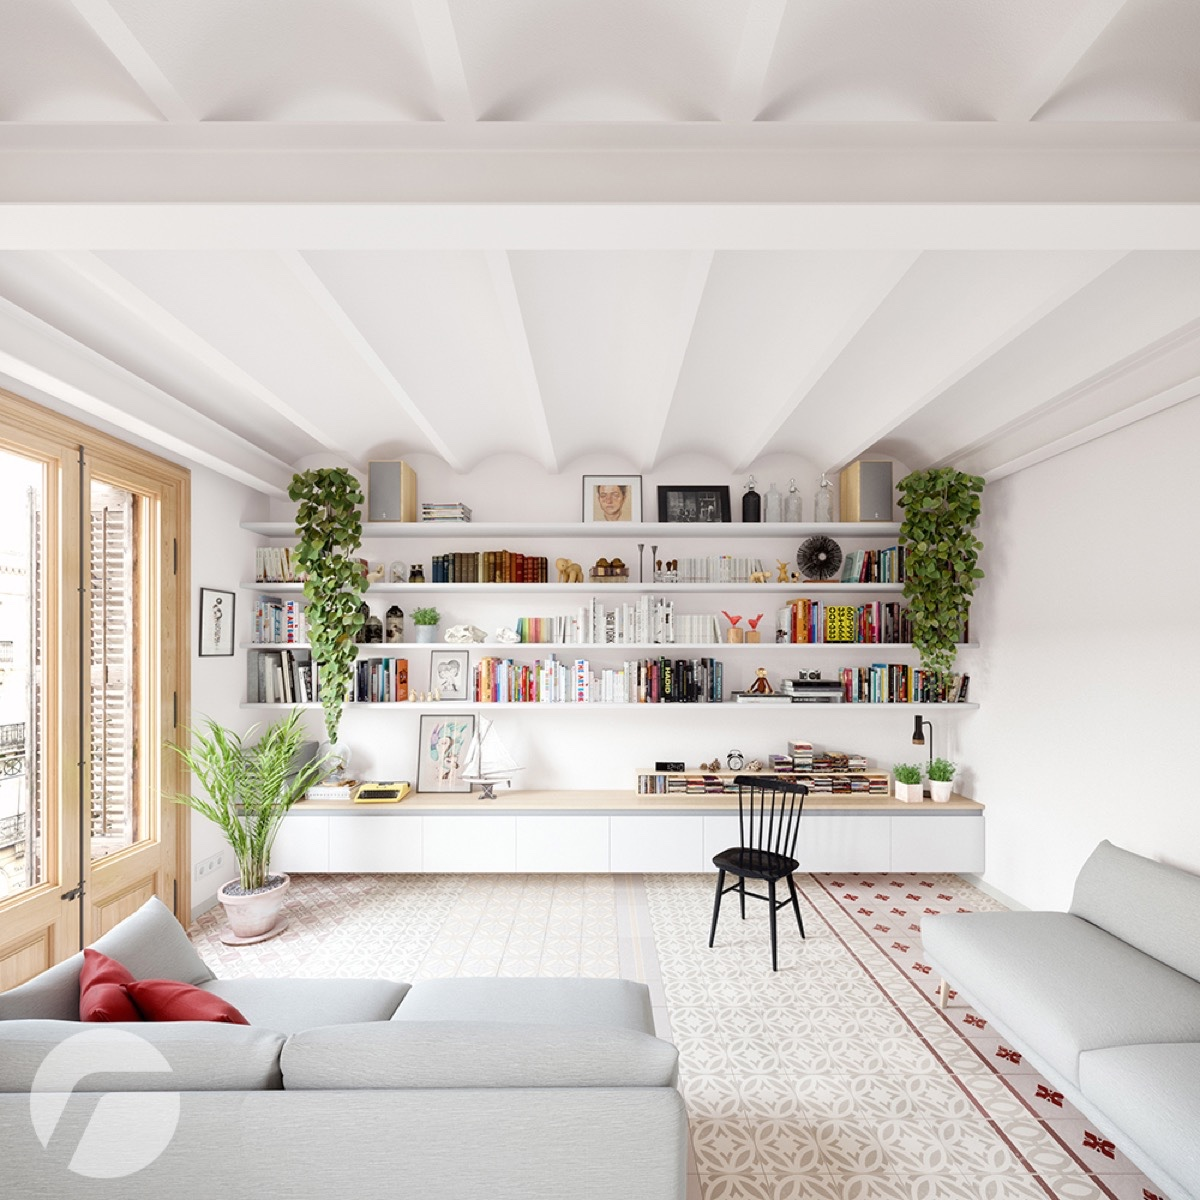 House Inside Design: 10 Stunning Apartments That Show Off The Beauty Of Nordic